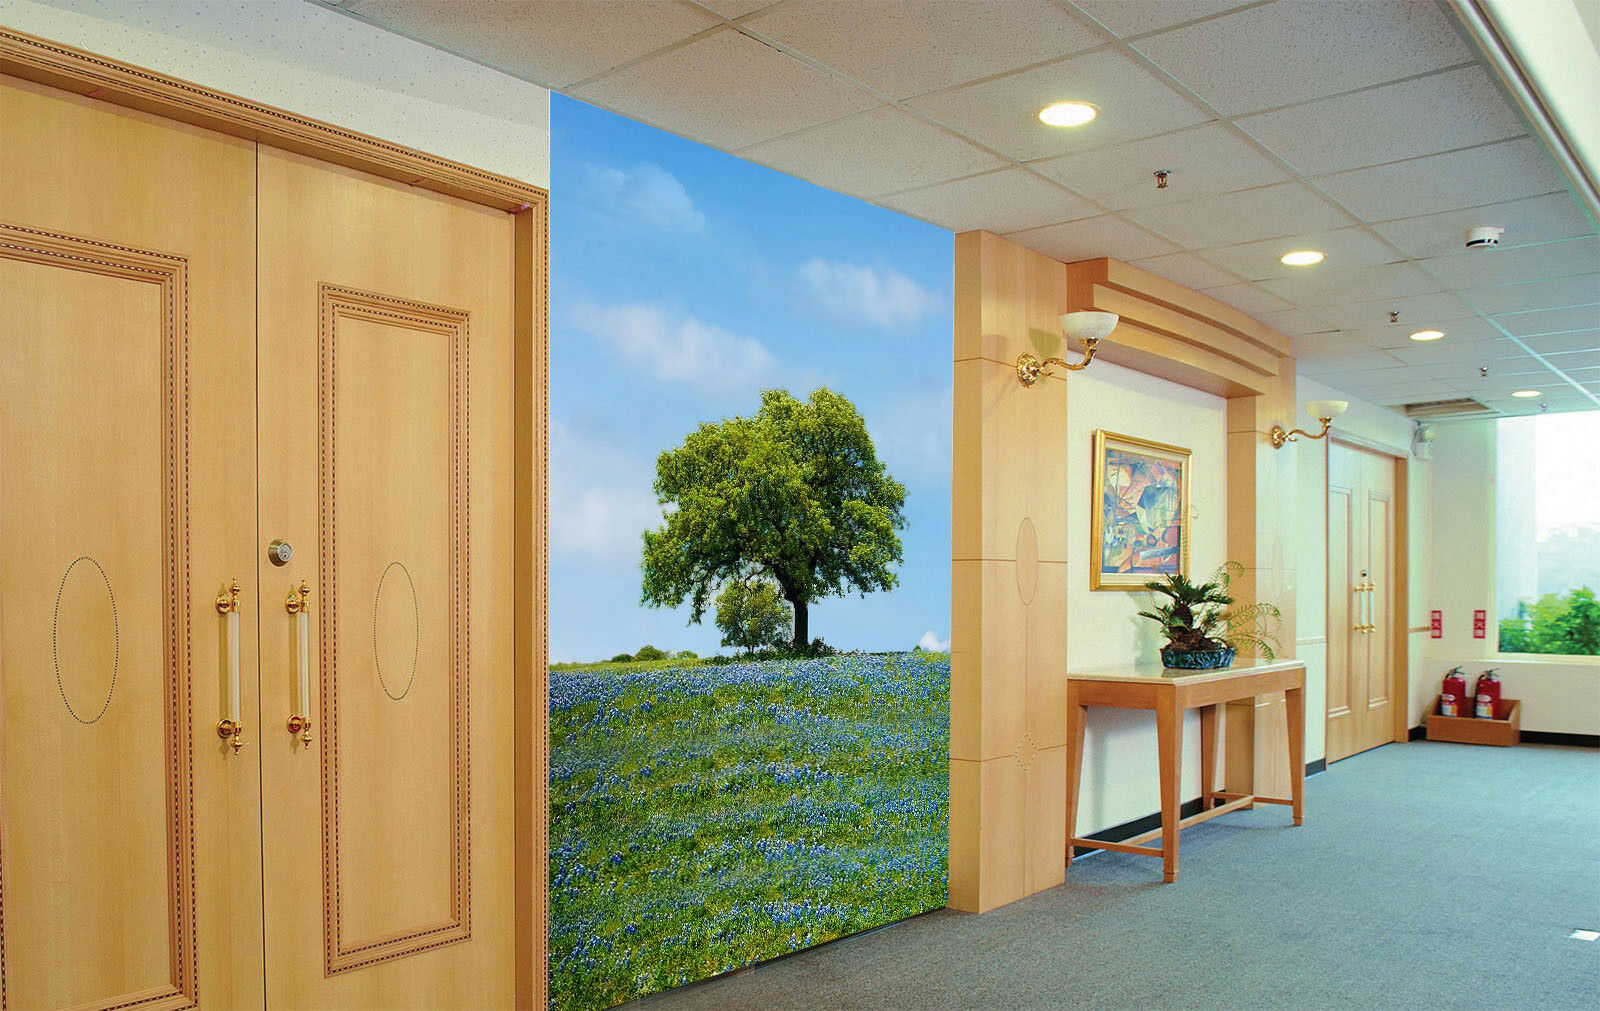 3D Field Tree 540 Wallpaper Murals Wall Print Wall Mural AJ WALL AU Summer